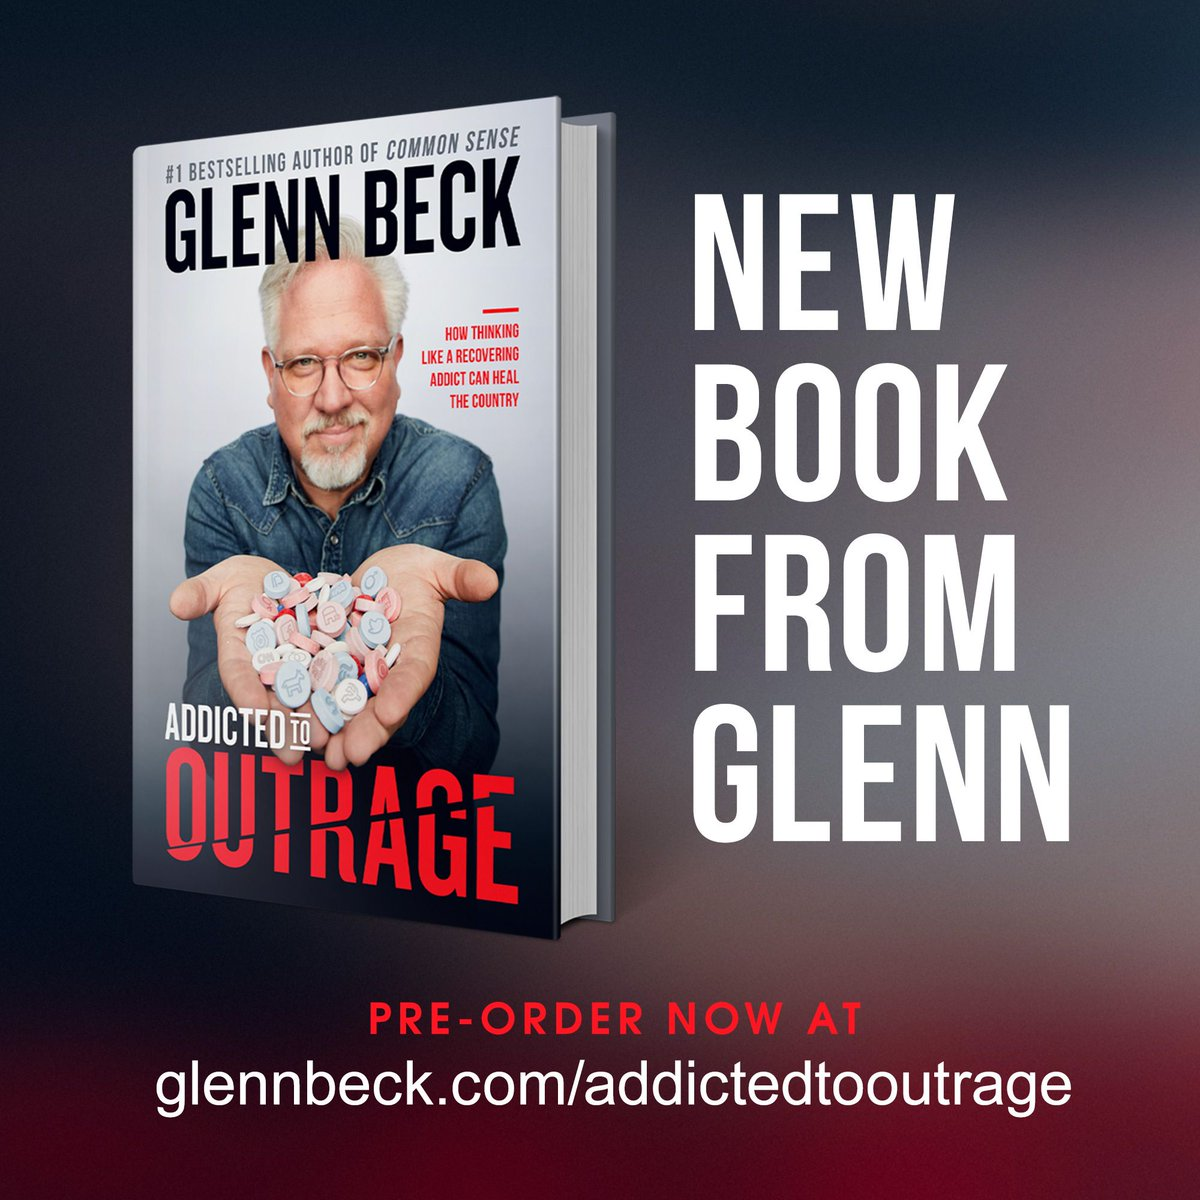 Christmas Sweater By Glenn Beck.Glenn Beck On Twitter New Book Addicted To Outrage In